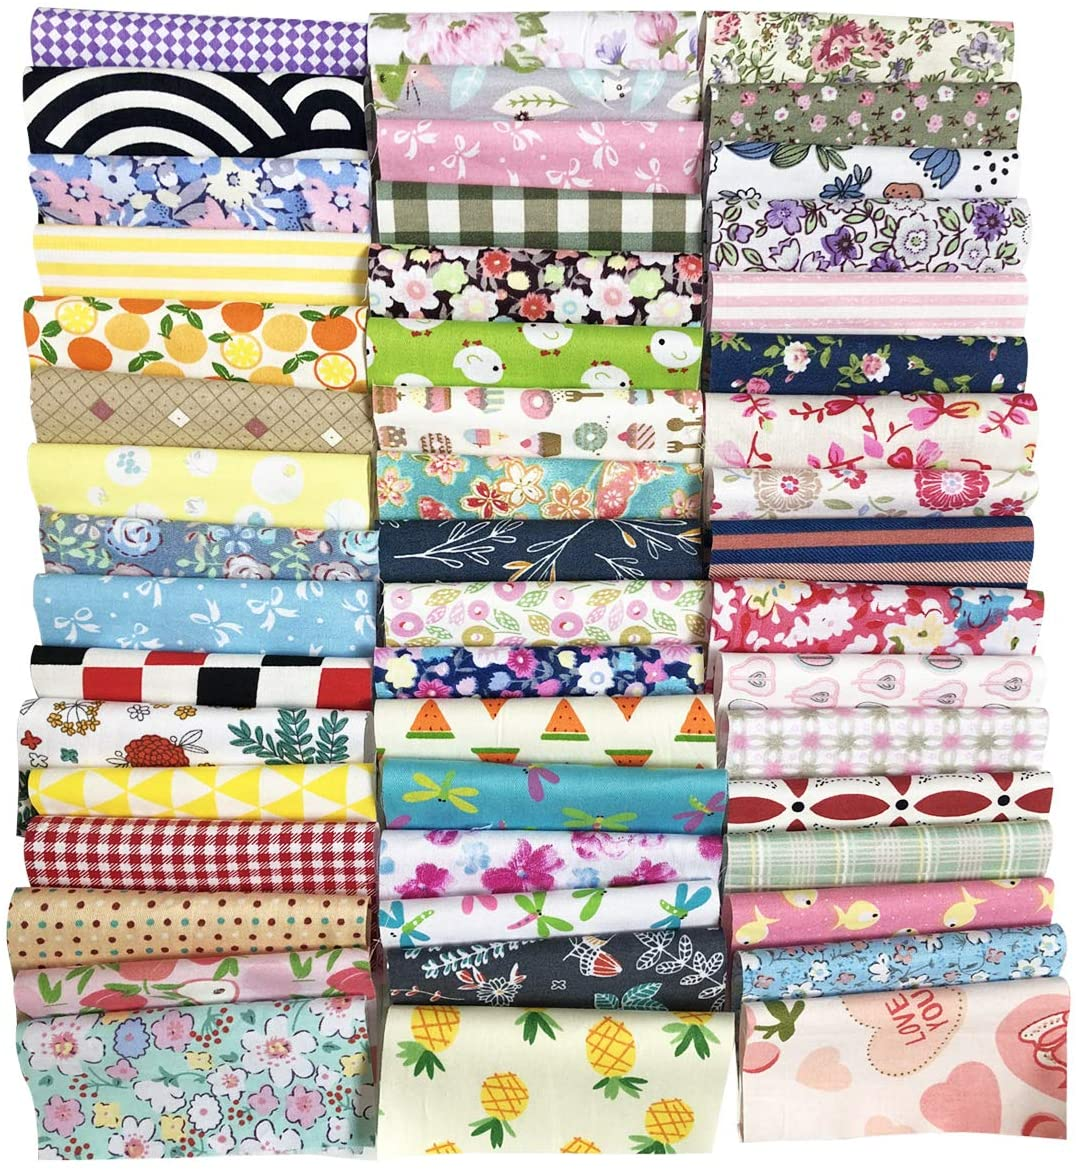 levylisa 200 PCS(10.2cmx10.2cm)100% Precut Cotton Fabric Bundles, DIY Sewing Quarters Bundle, Cotton Quarter Fabric Bundle, Precut Fabric, Quilting Fabric Bundles, Precut Quilt Kit, Vintage Sheet